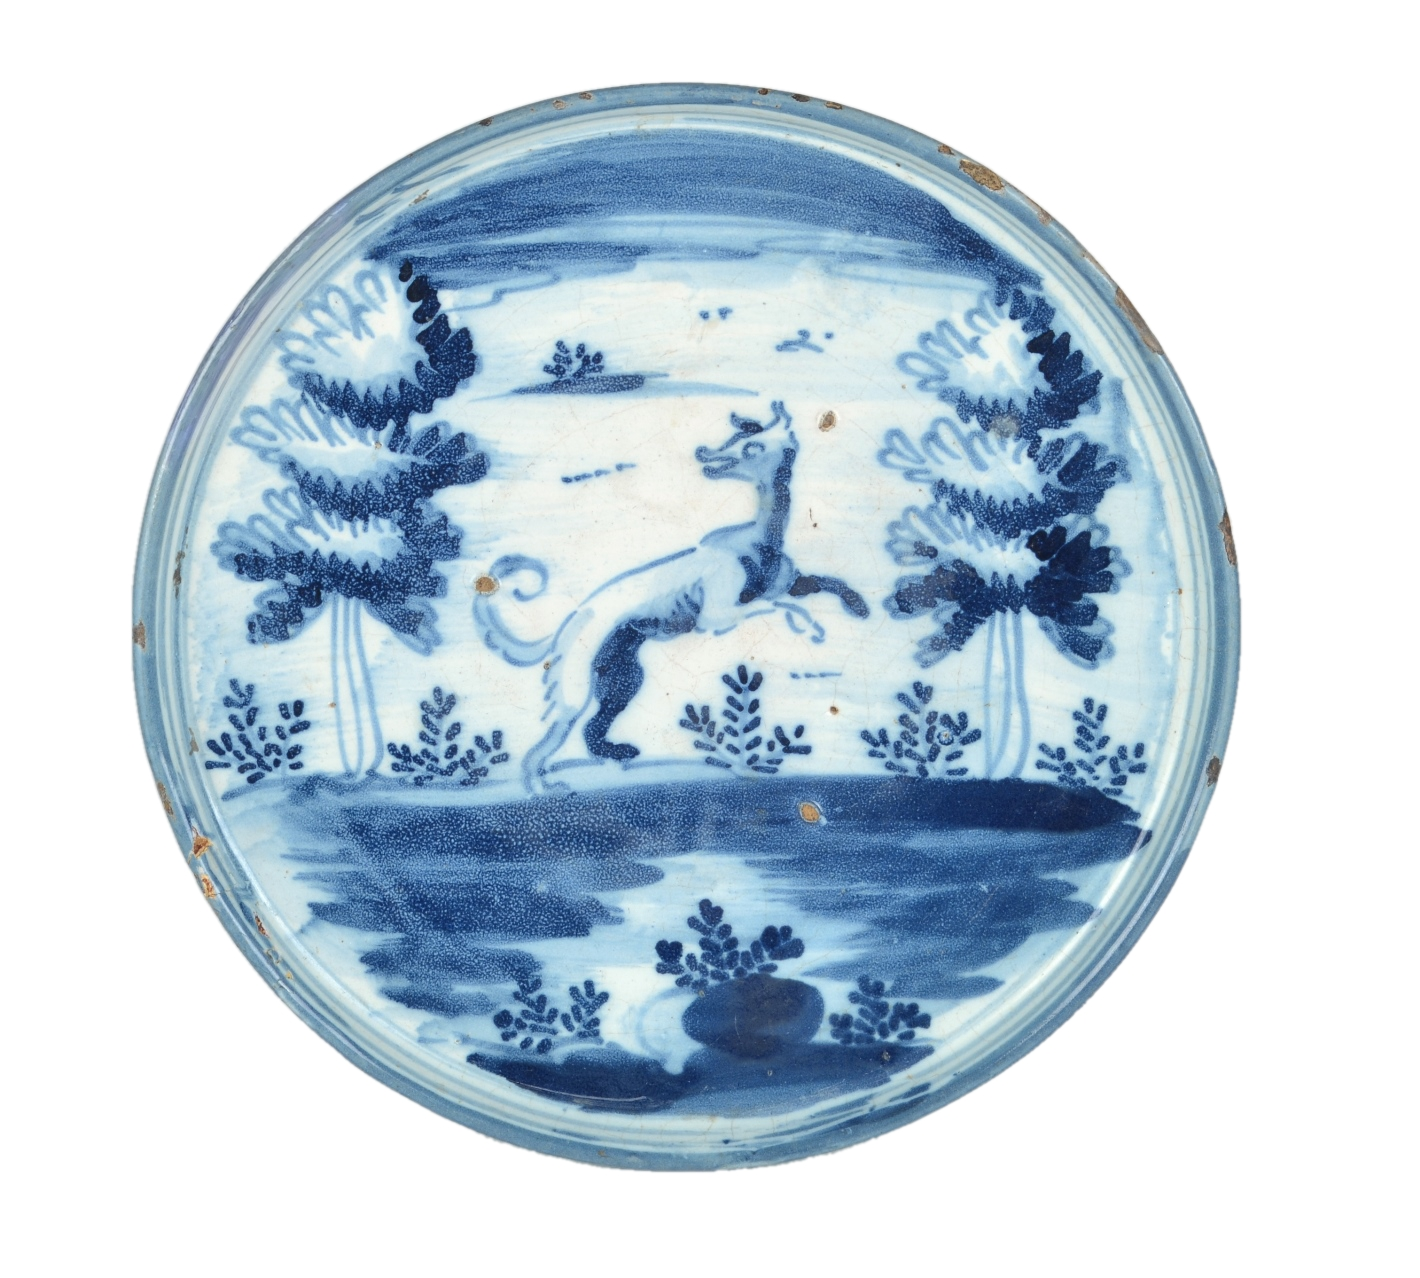 View 1: Delightful Blue and White Spanish Majolica Tazza